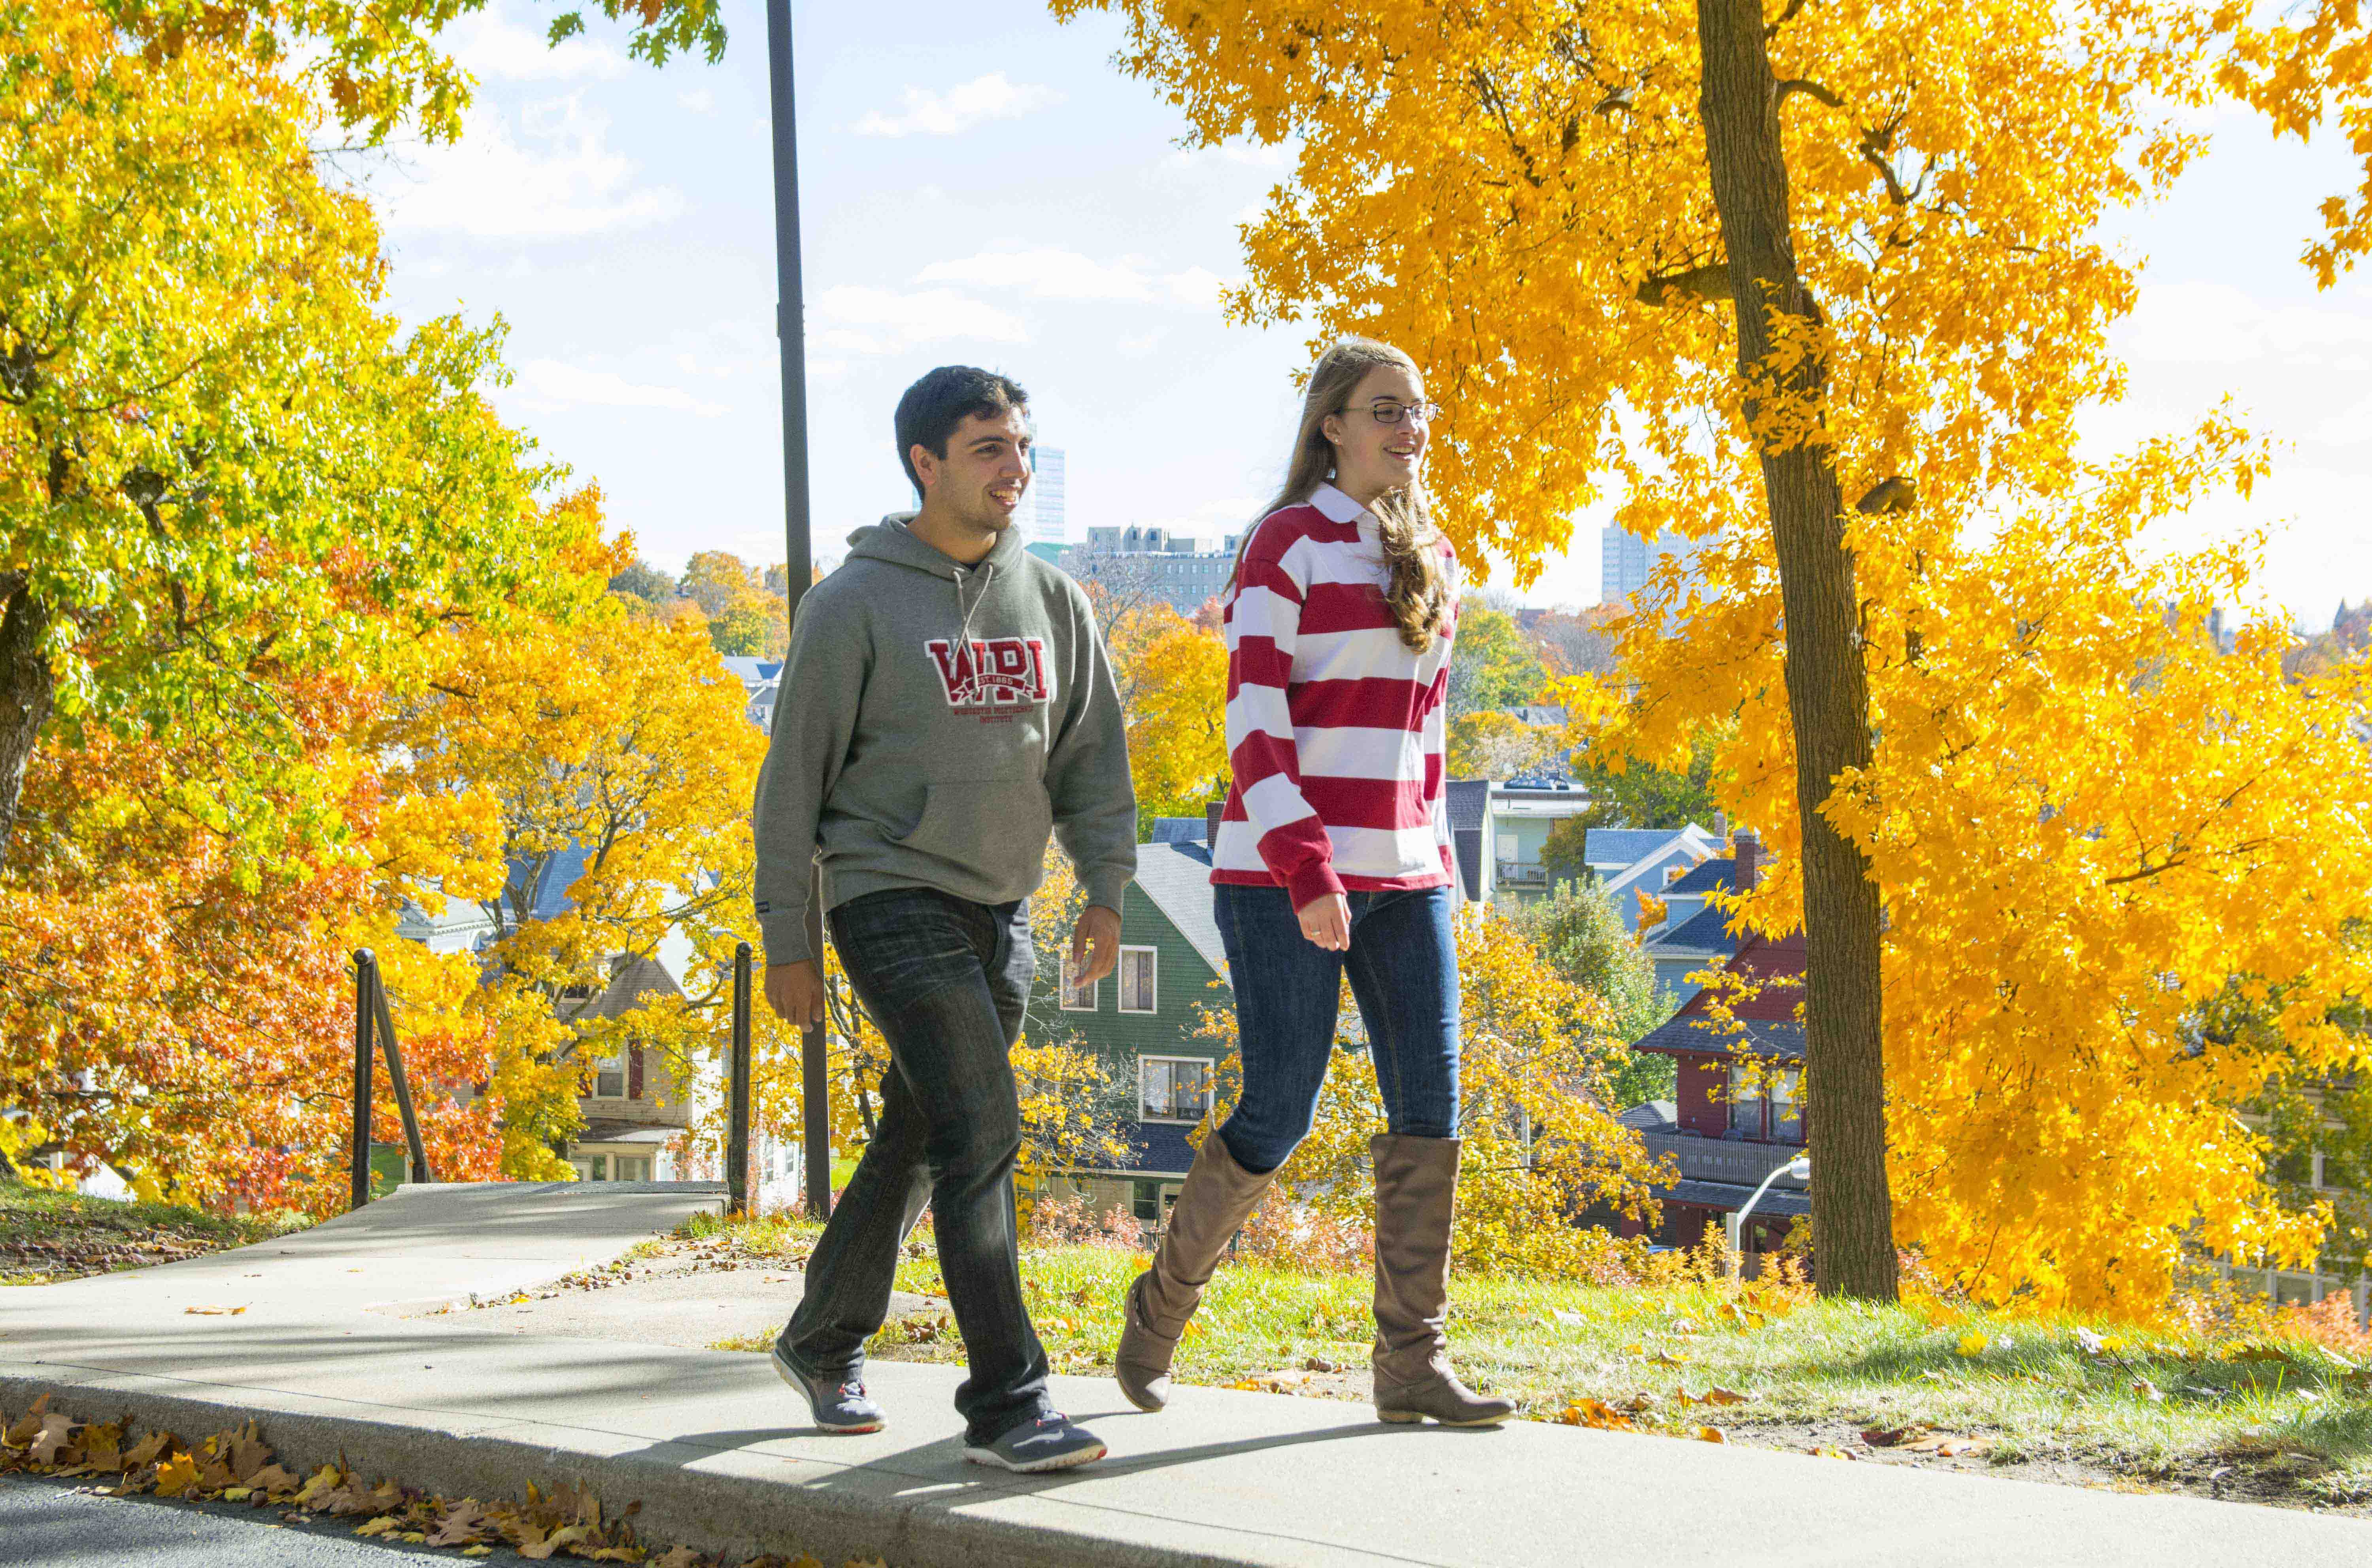 Students walking on campus in the fall foliage